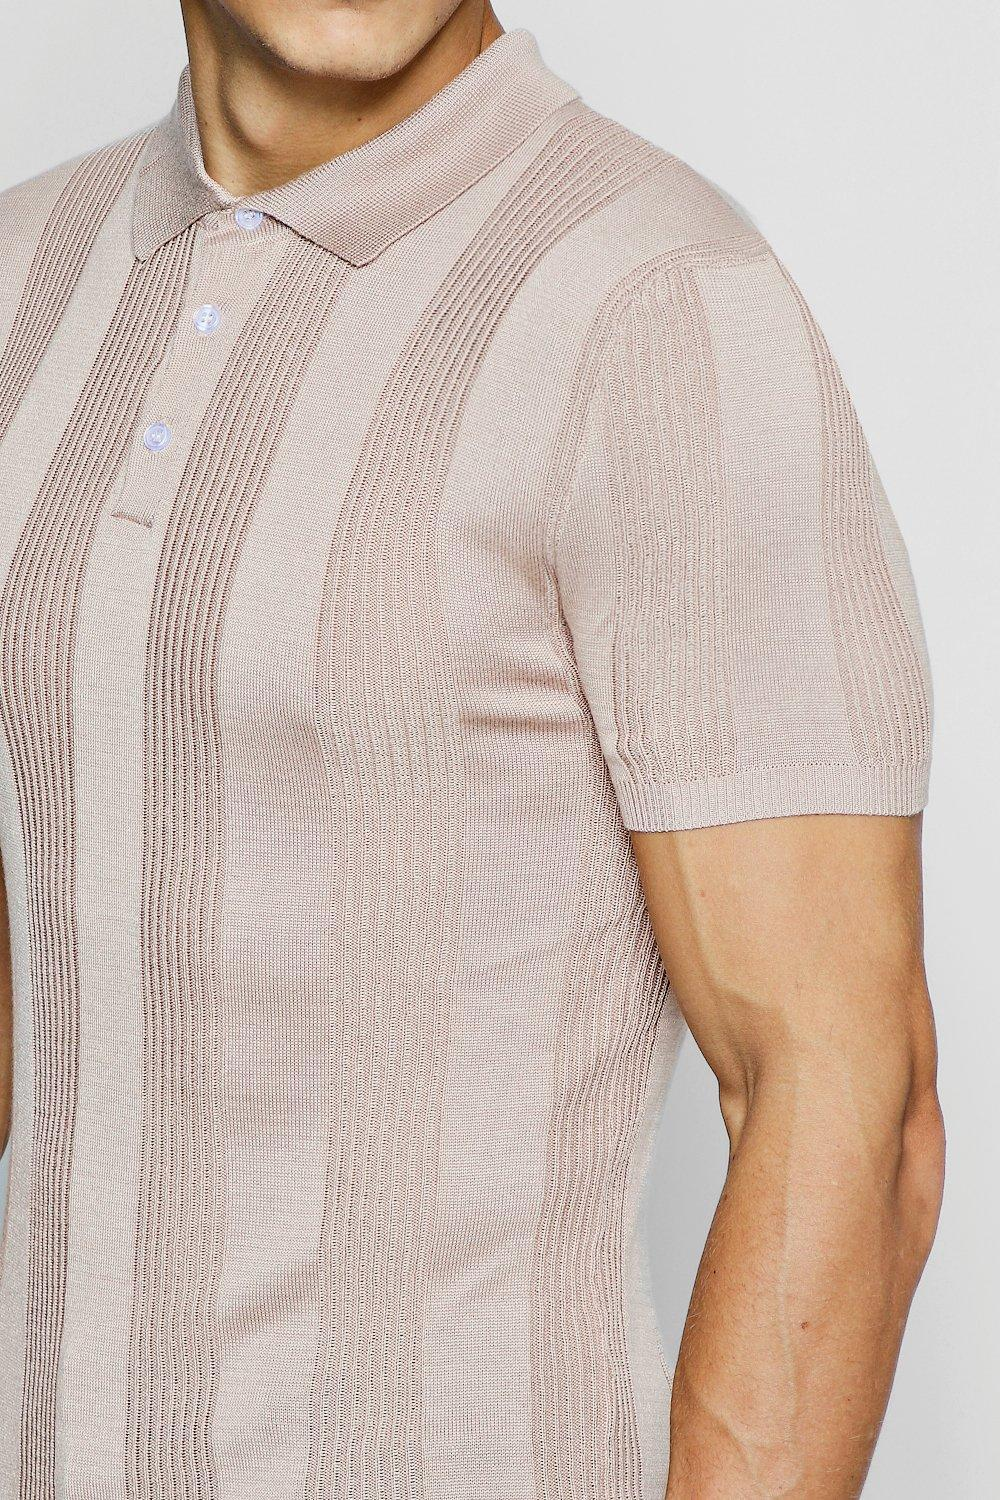 c3d76e7083c3 Lyst - BoohooMAN Rib Stripe Knitted Muscle Fit Polo for Men